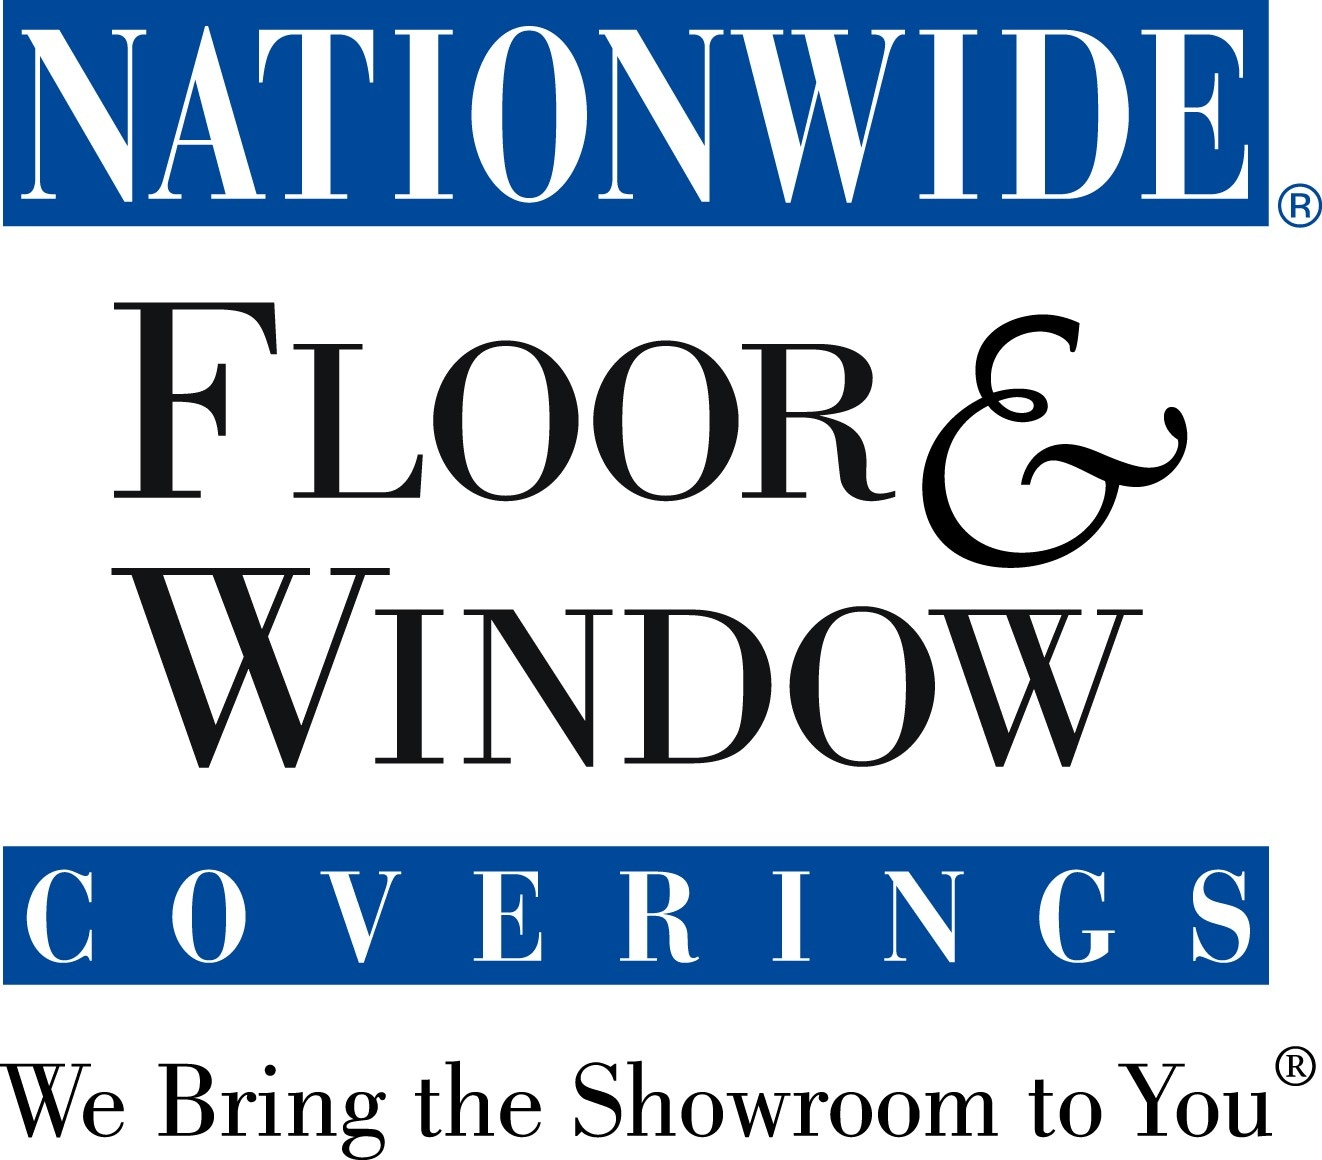 Nationwide Floor & Window Coverings logo